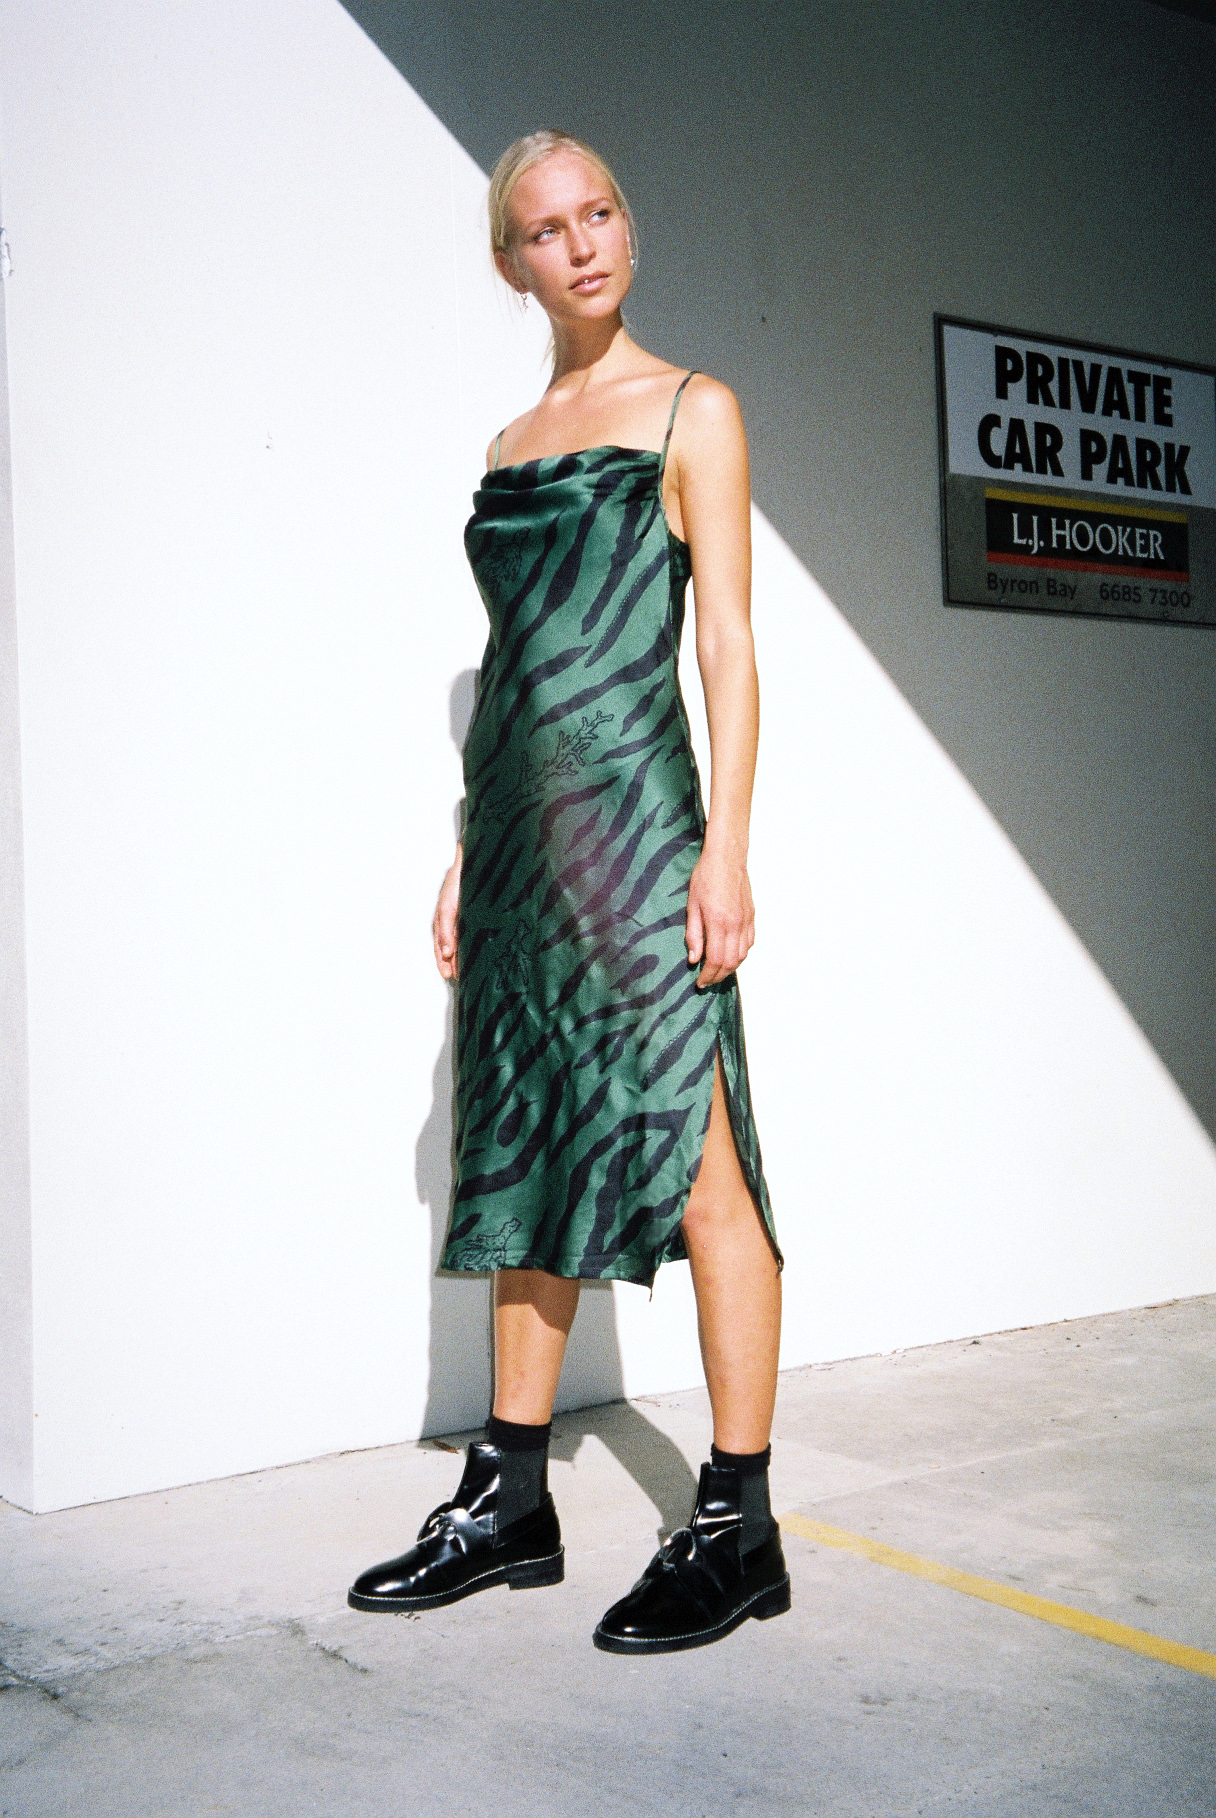 ursula dress 1 SMALL.jpg